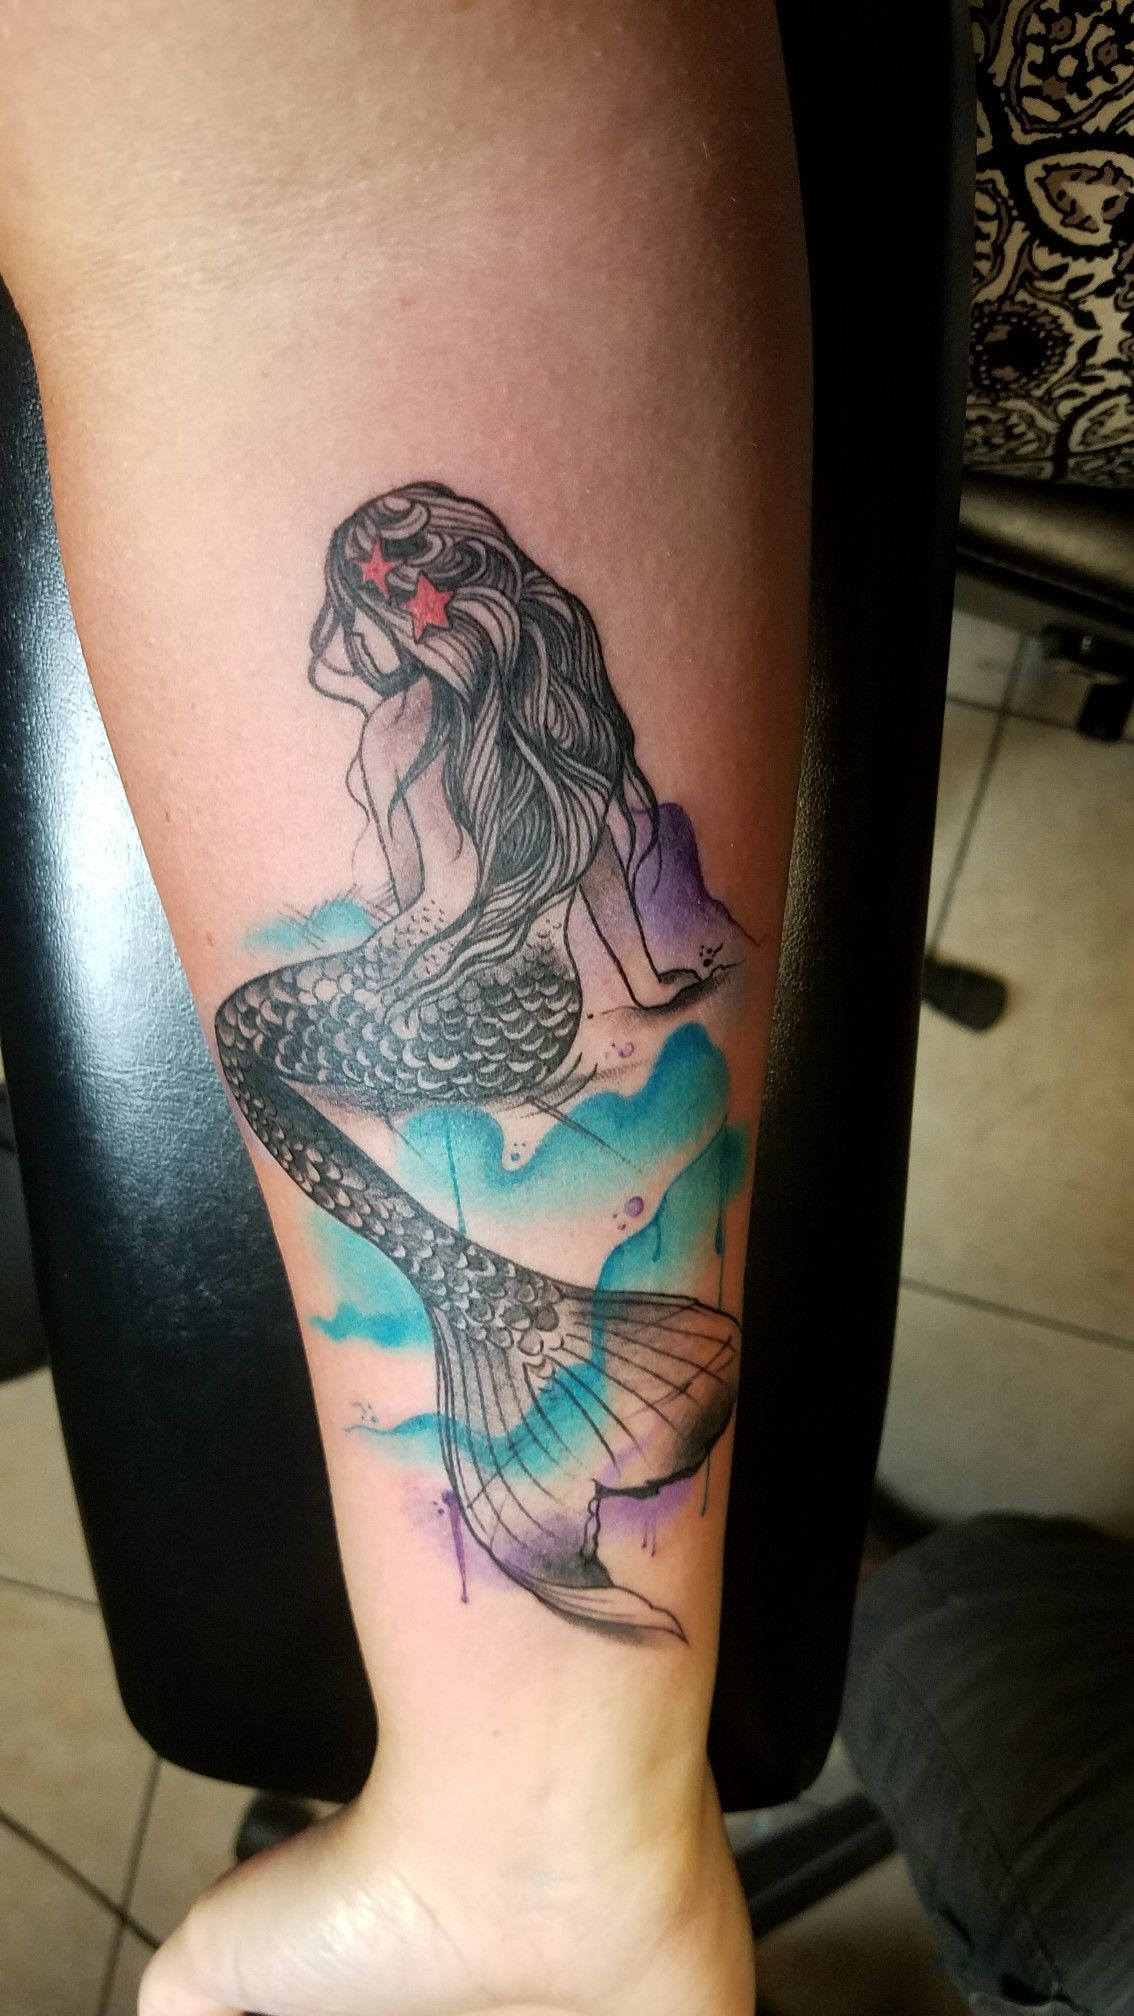 My Beautiful New Mermaid Tattoo Done In Myrtle Beach At Elite Ink Tattoos Mermaid Tattoo Designs Mermaid Tattoos Mermaid Tattoo